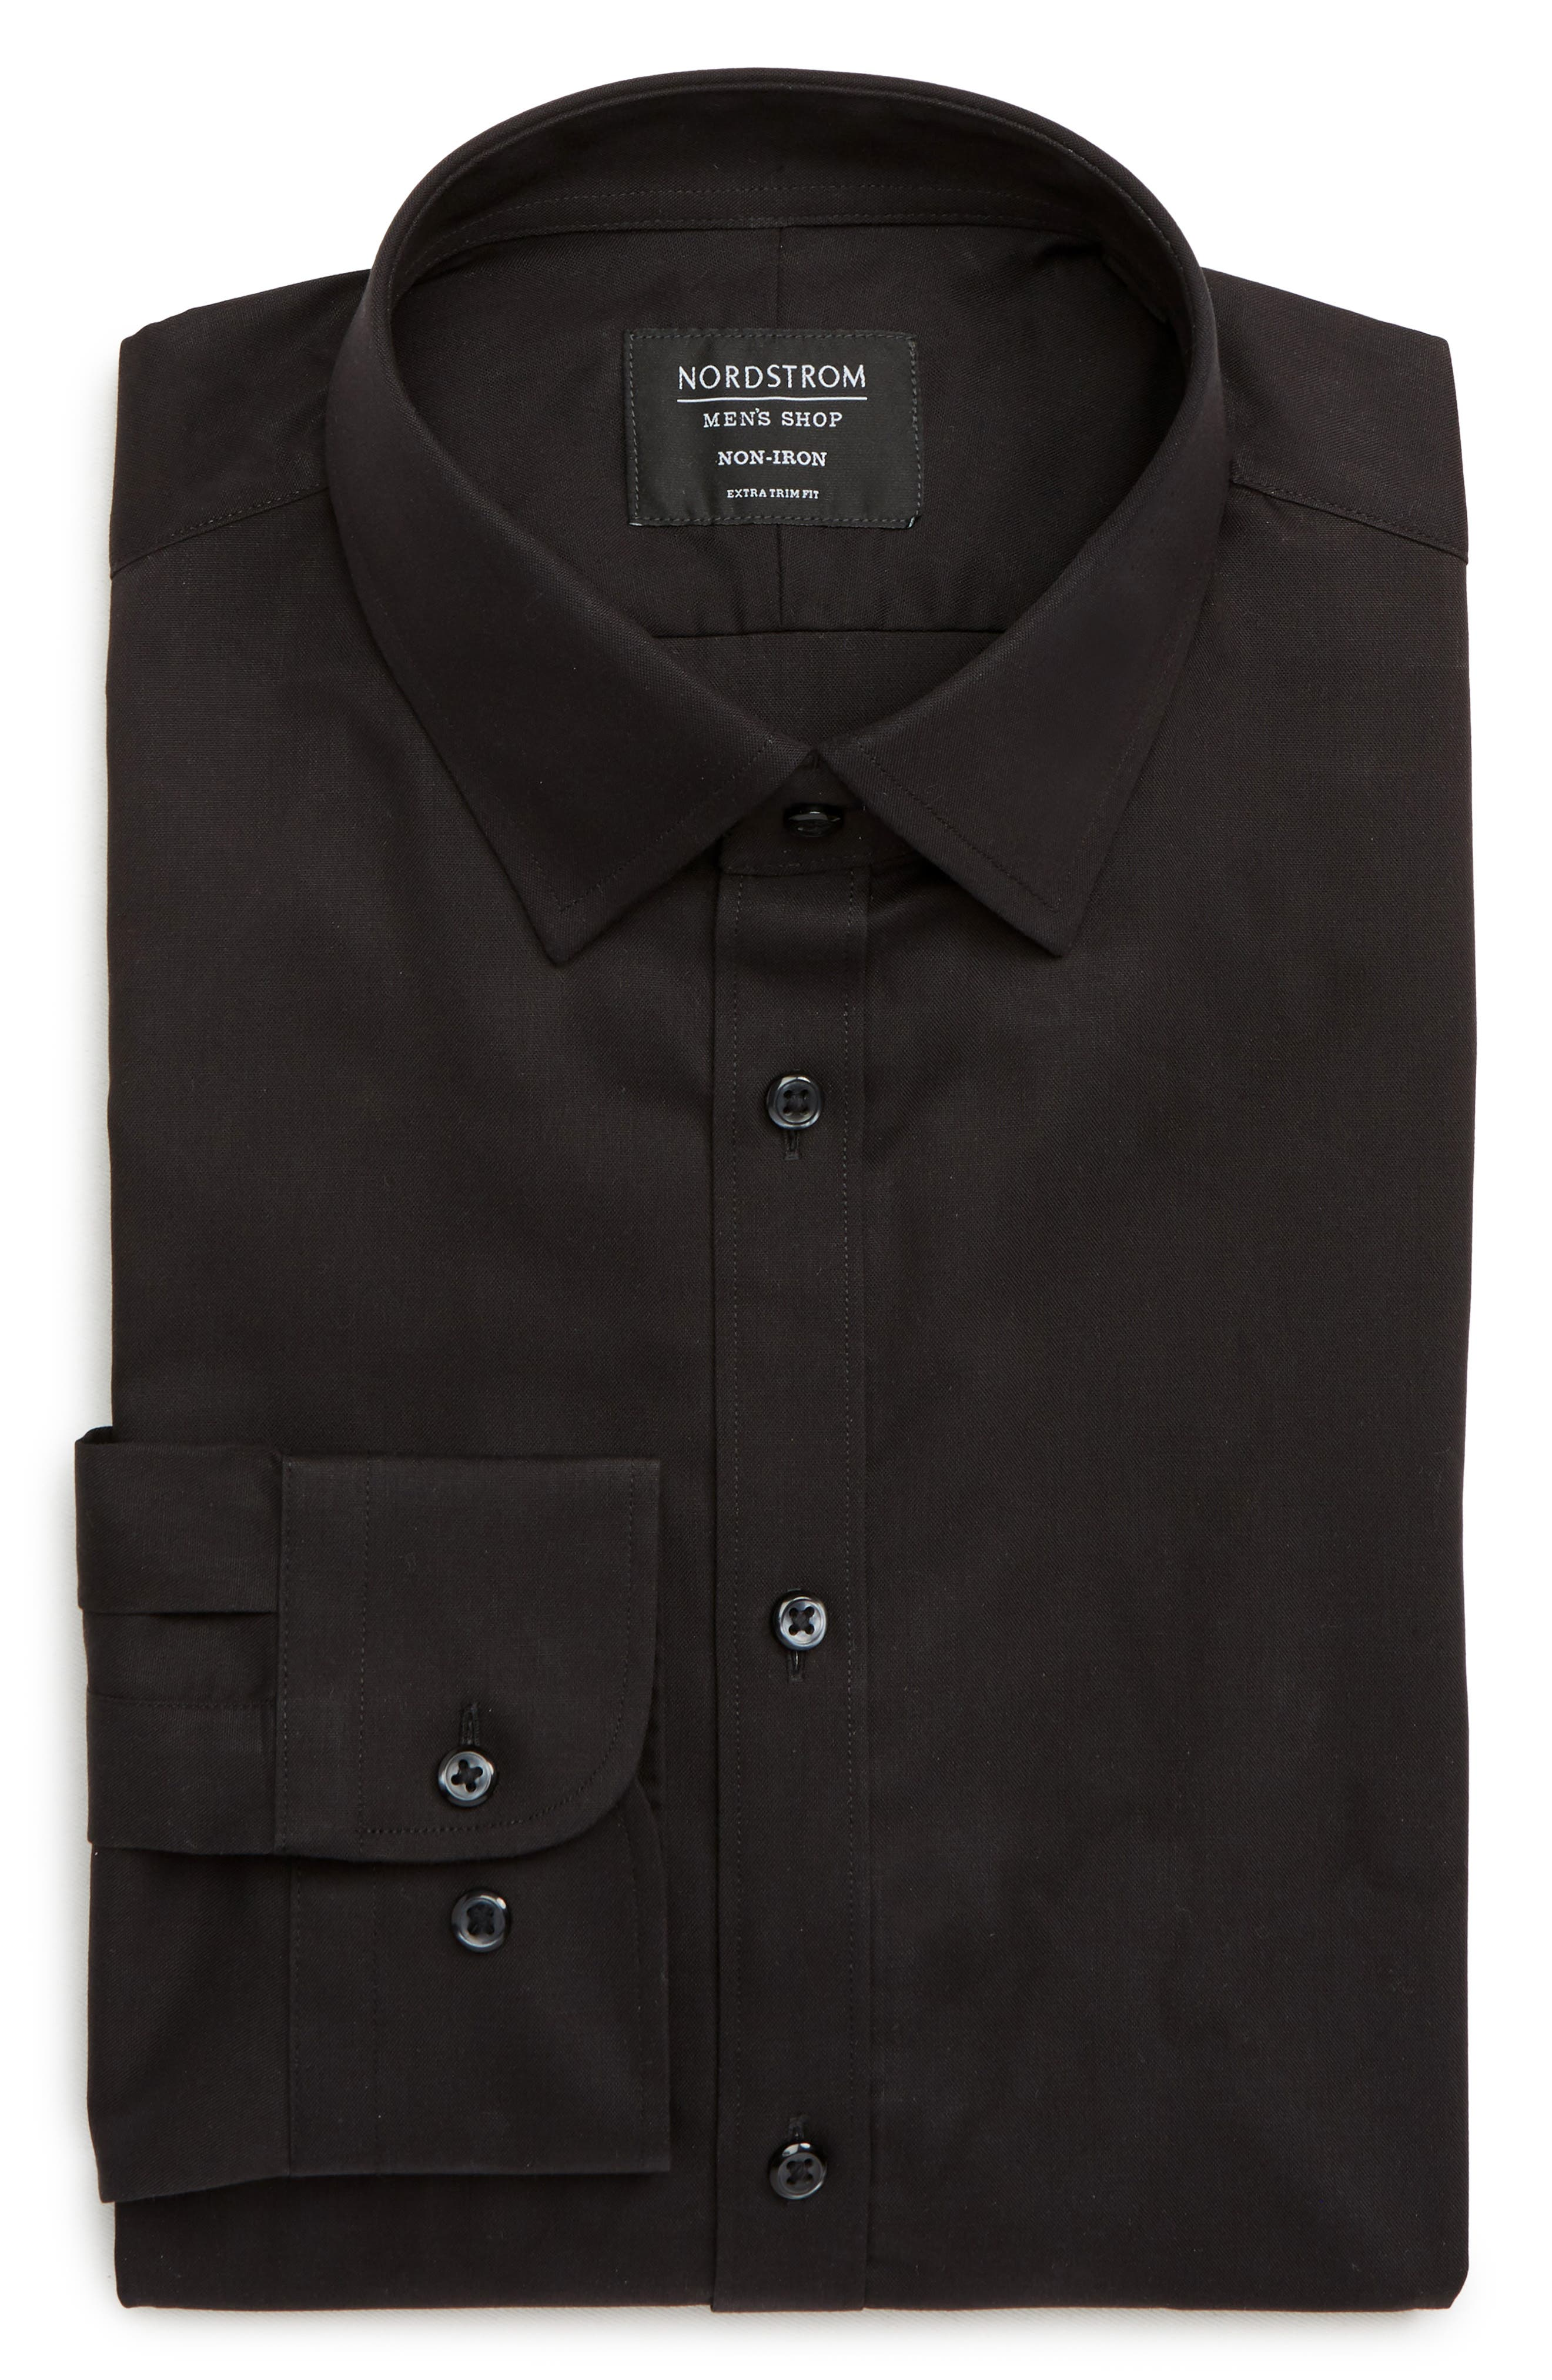 NORDSTROM MEN'S SHOP, Extra Trim Fit Non-Iron Solid Dress Shirt, Alternate thumbnail 5, color, BLACK ROCK